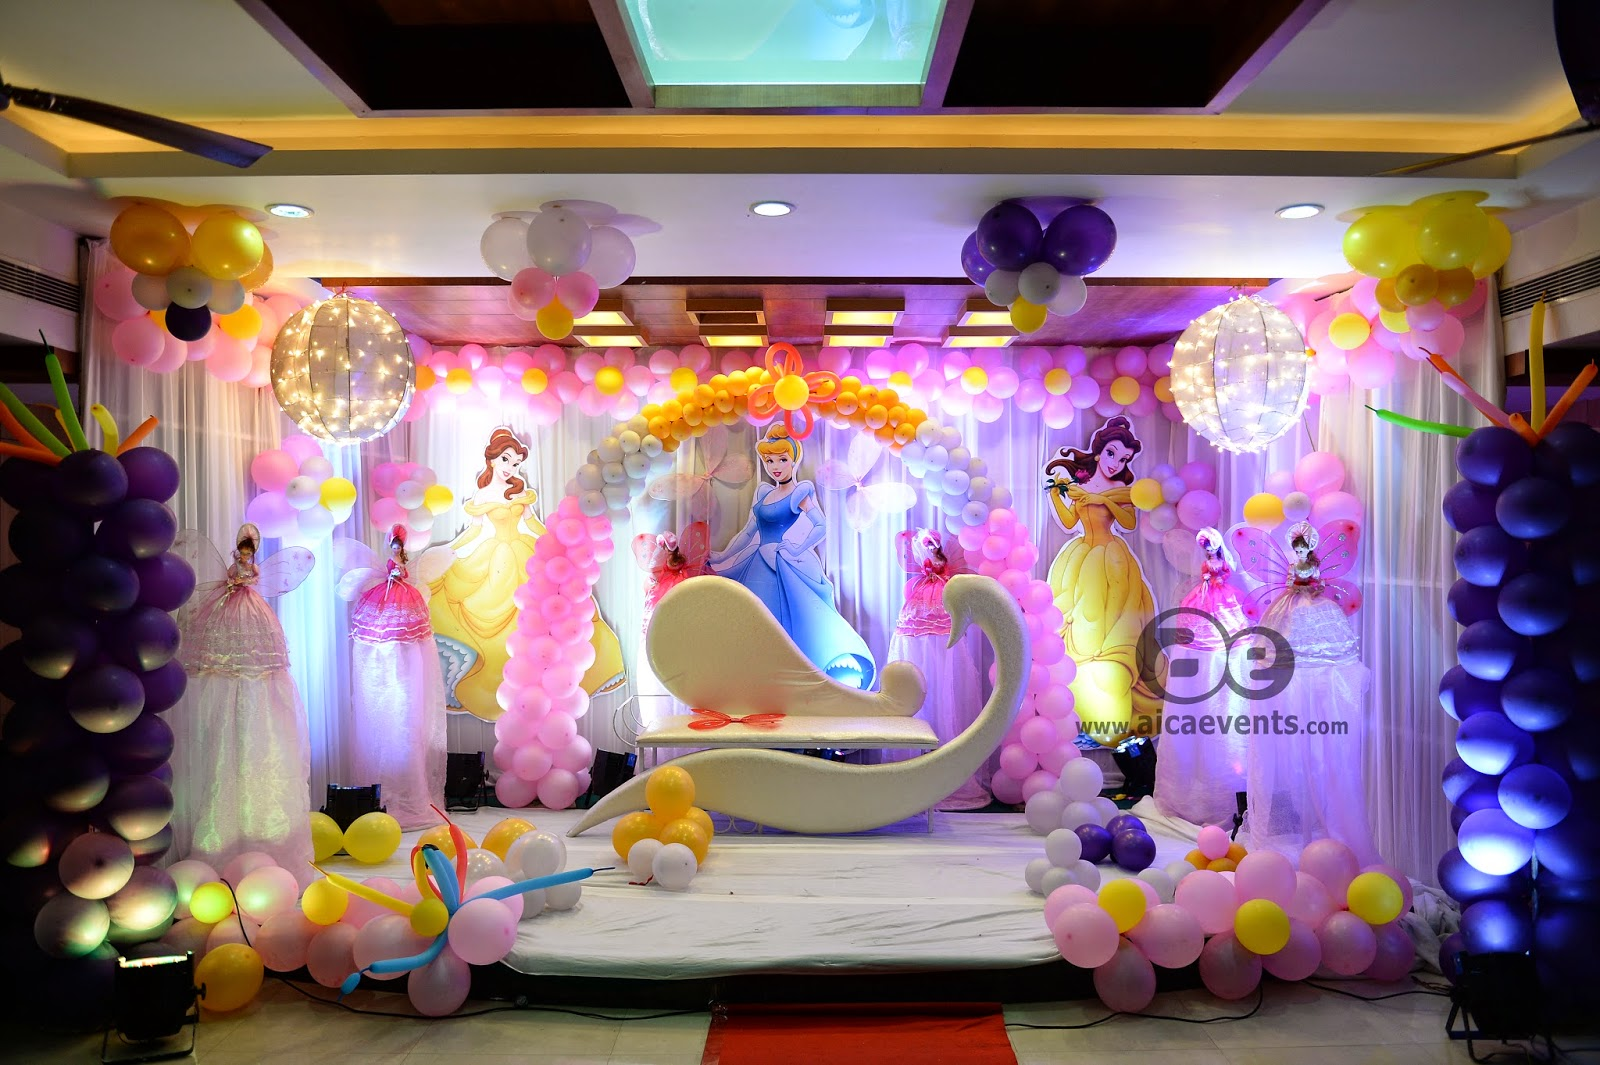 Decoration For Party Aicaevents India Barbie Theme Decorations By Aica Events